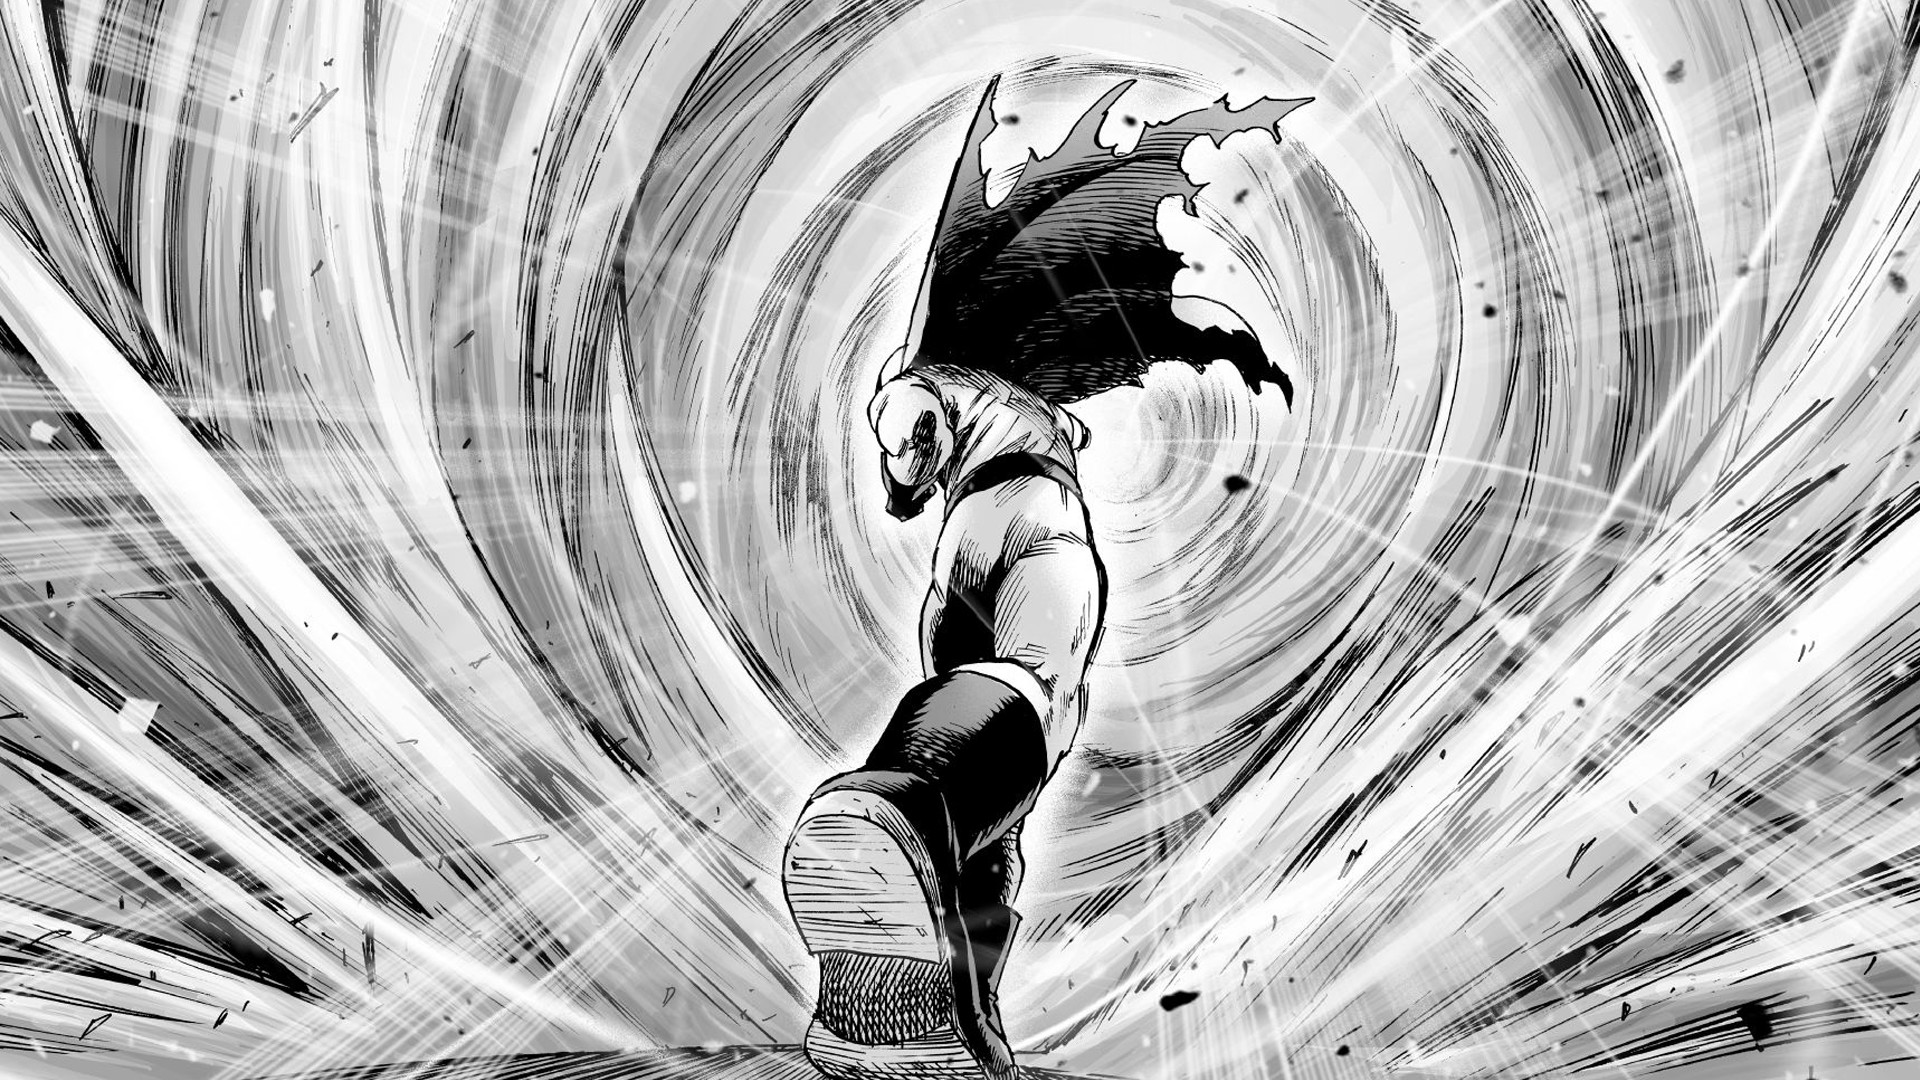 210 Saitama (One-Punch Man) HD Wallpapers   Backgrounds – Wallpaper Abyss –  Page 2